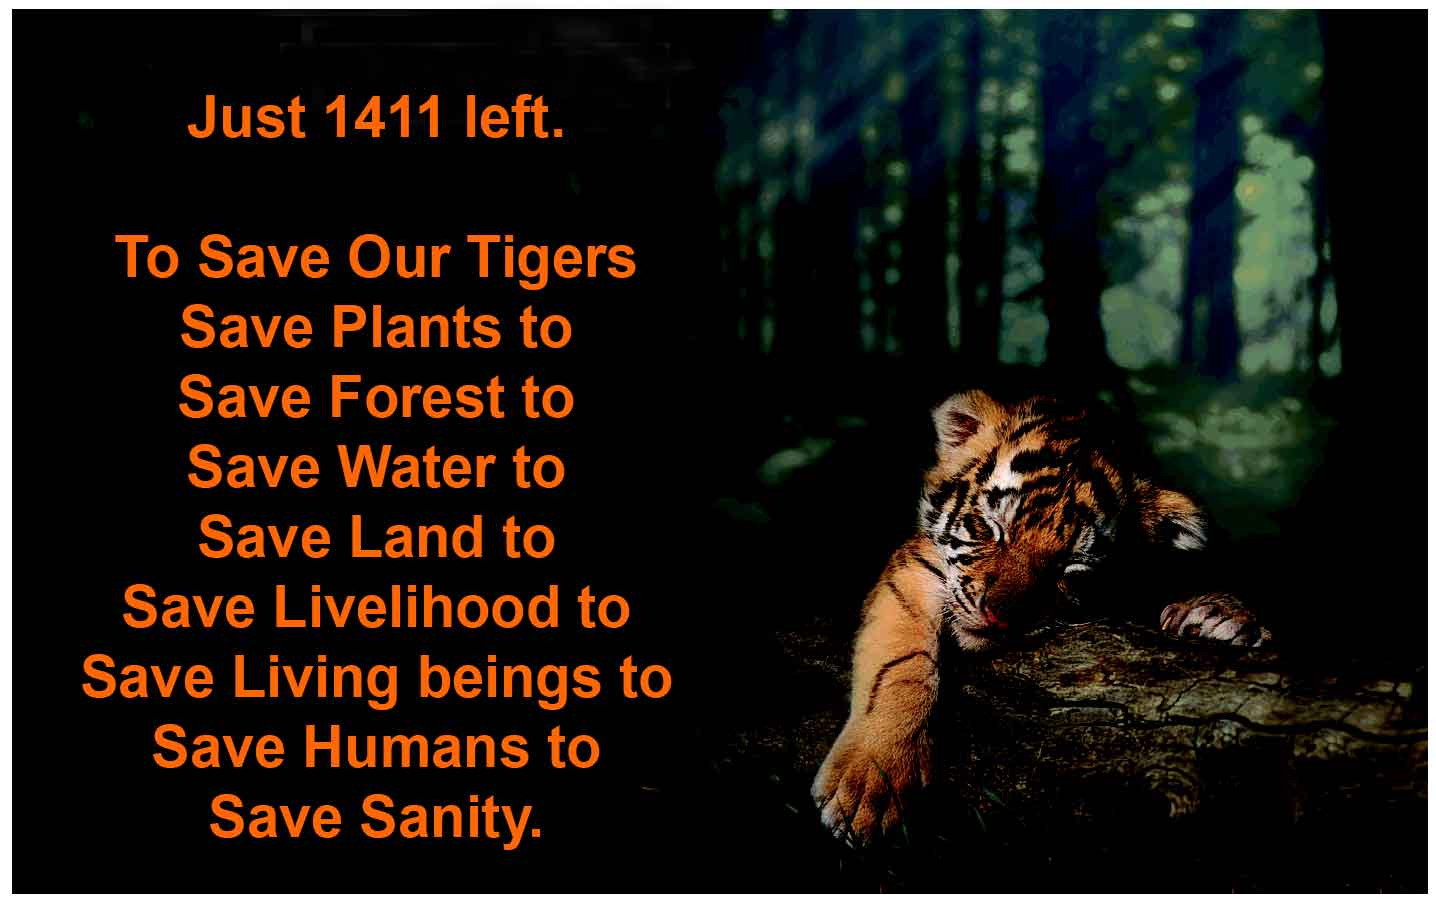 essay on save indian tigers The project tiger was launched in india in 1972 as conservation programme for saving the indian tiger steps to save tigers project tiger why should we save.